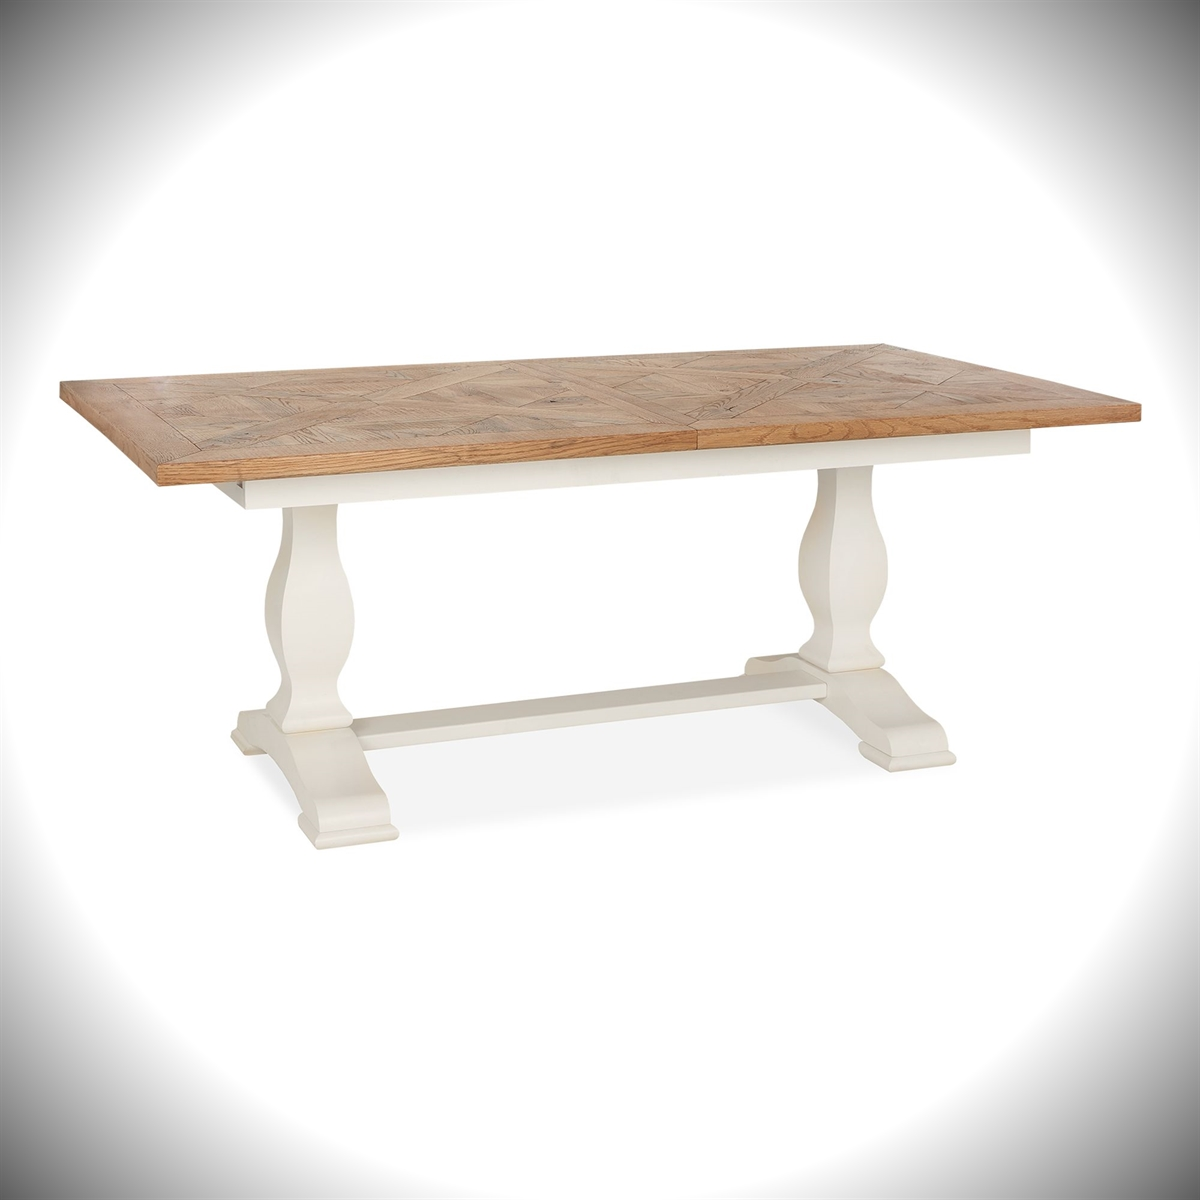 Belgrave 6-8 Extension Table - 2 Tone